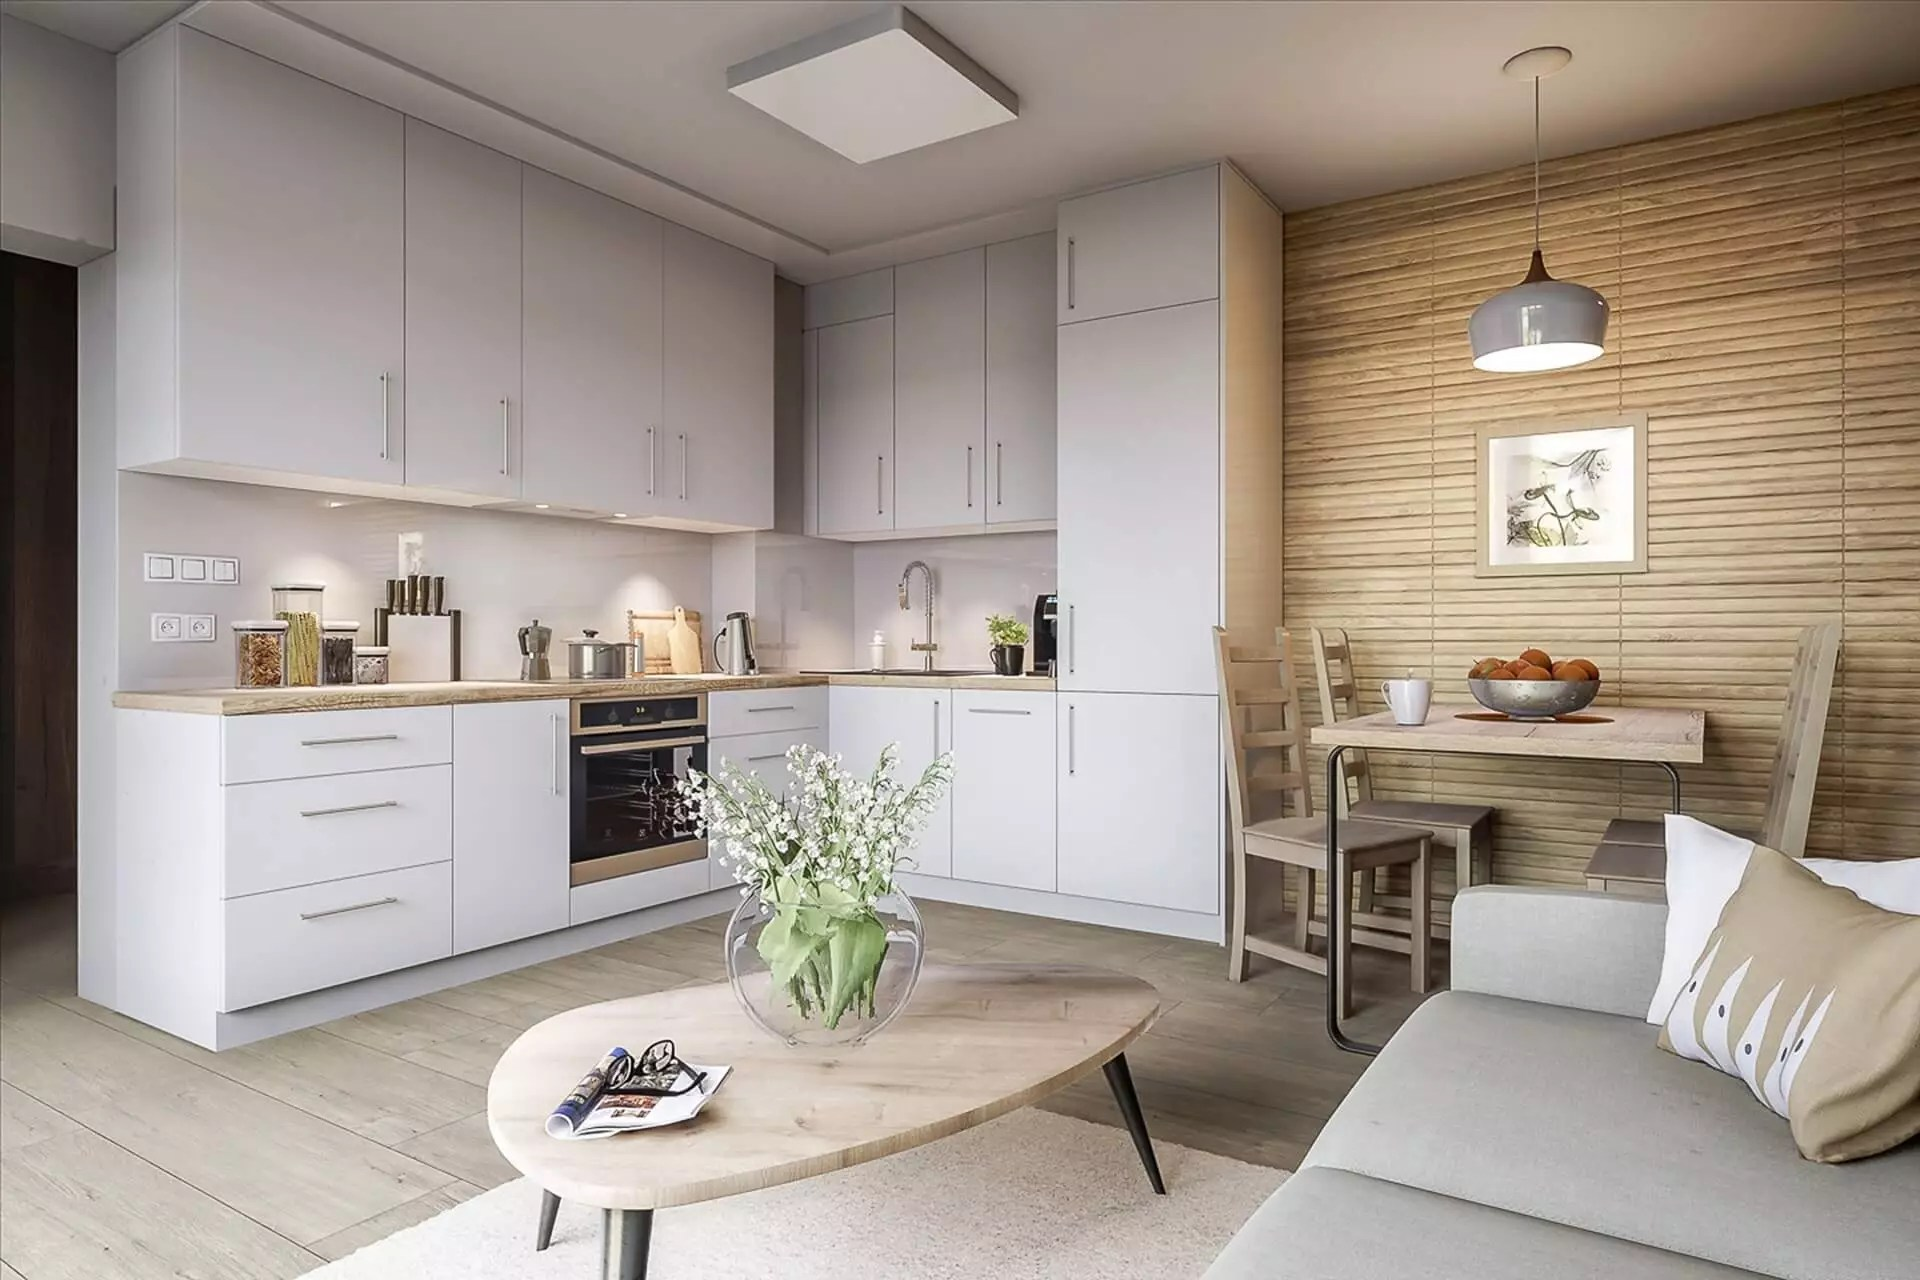 Kitchen Living Room Combo Design Ideas And Trends 2020 2021 Photos